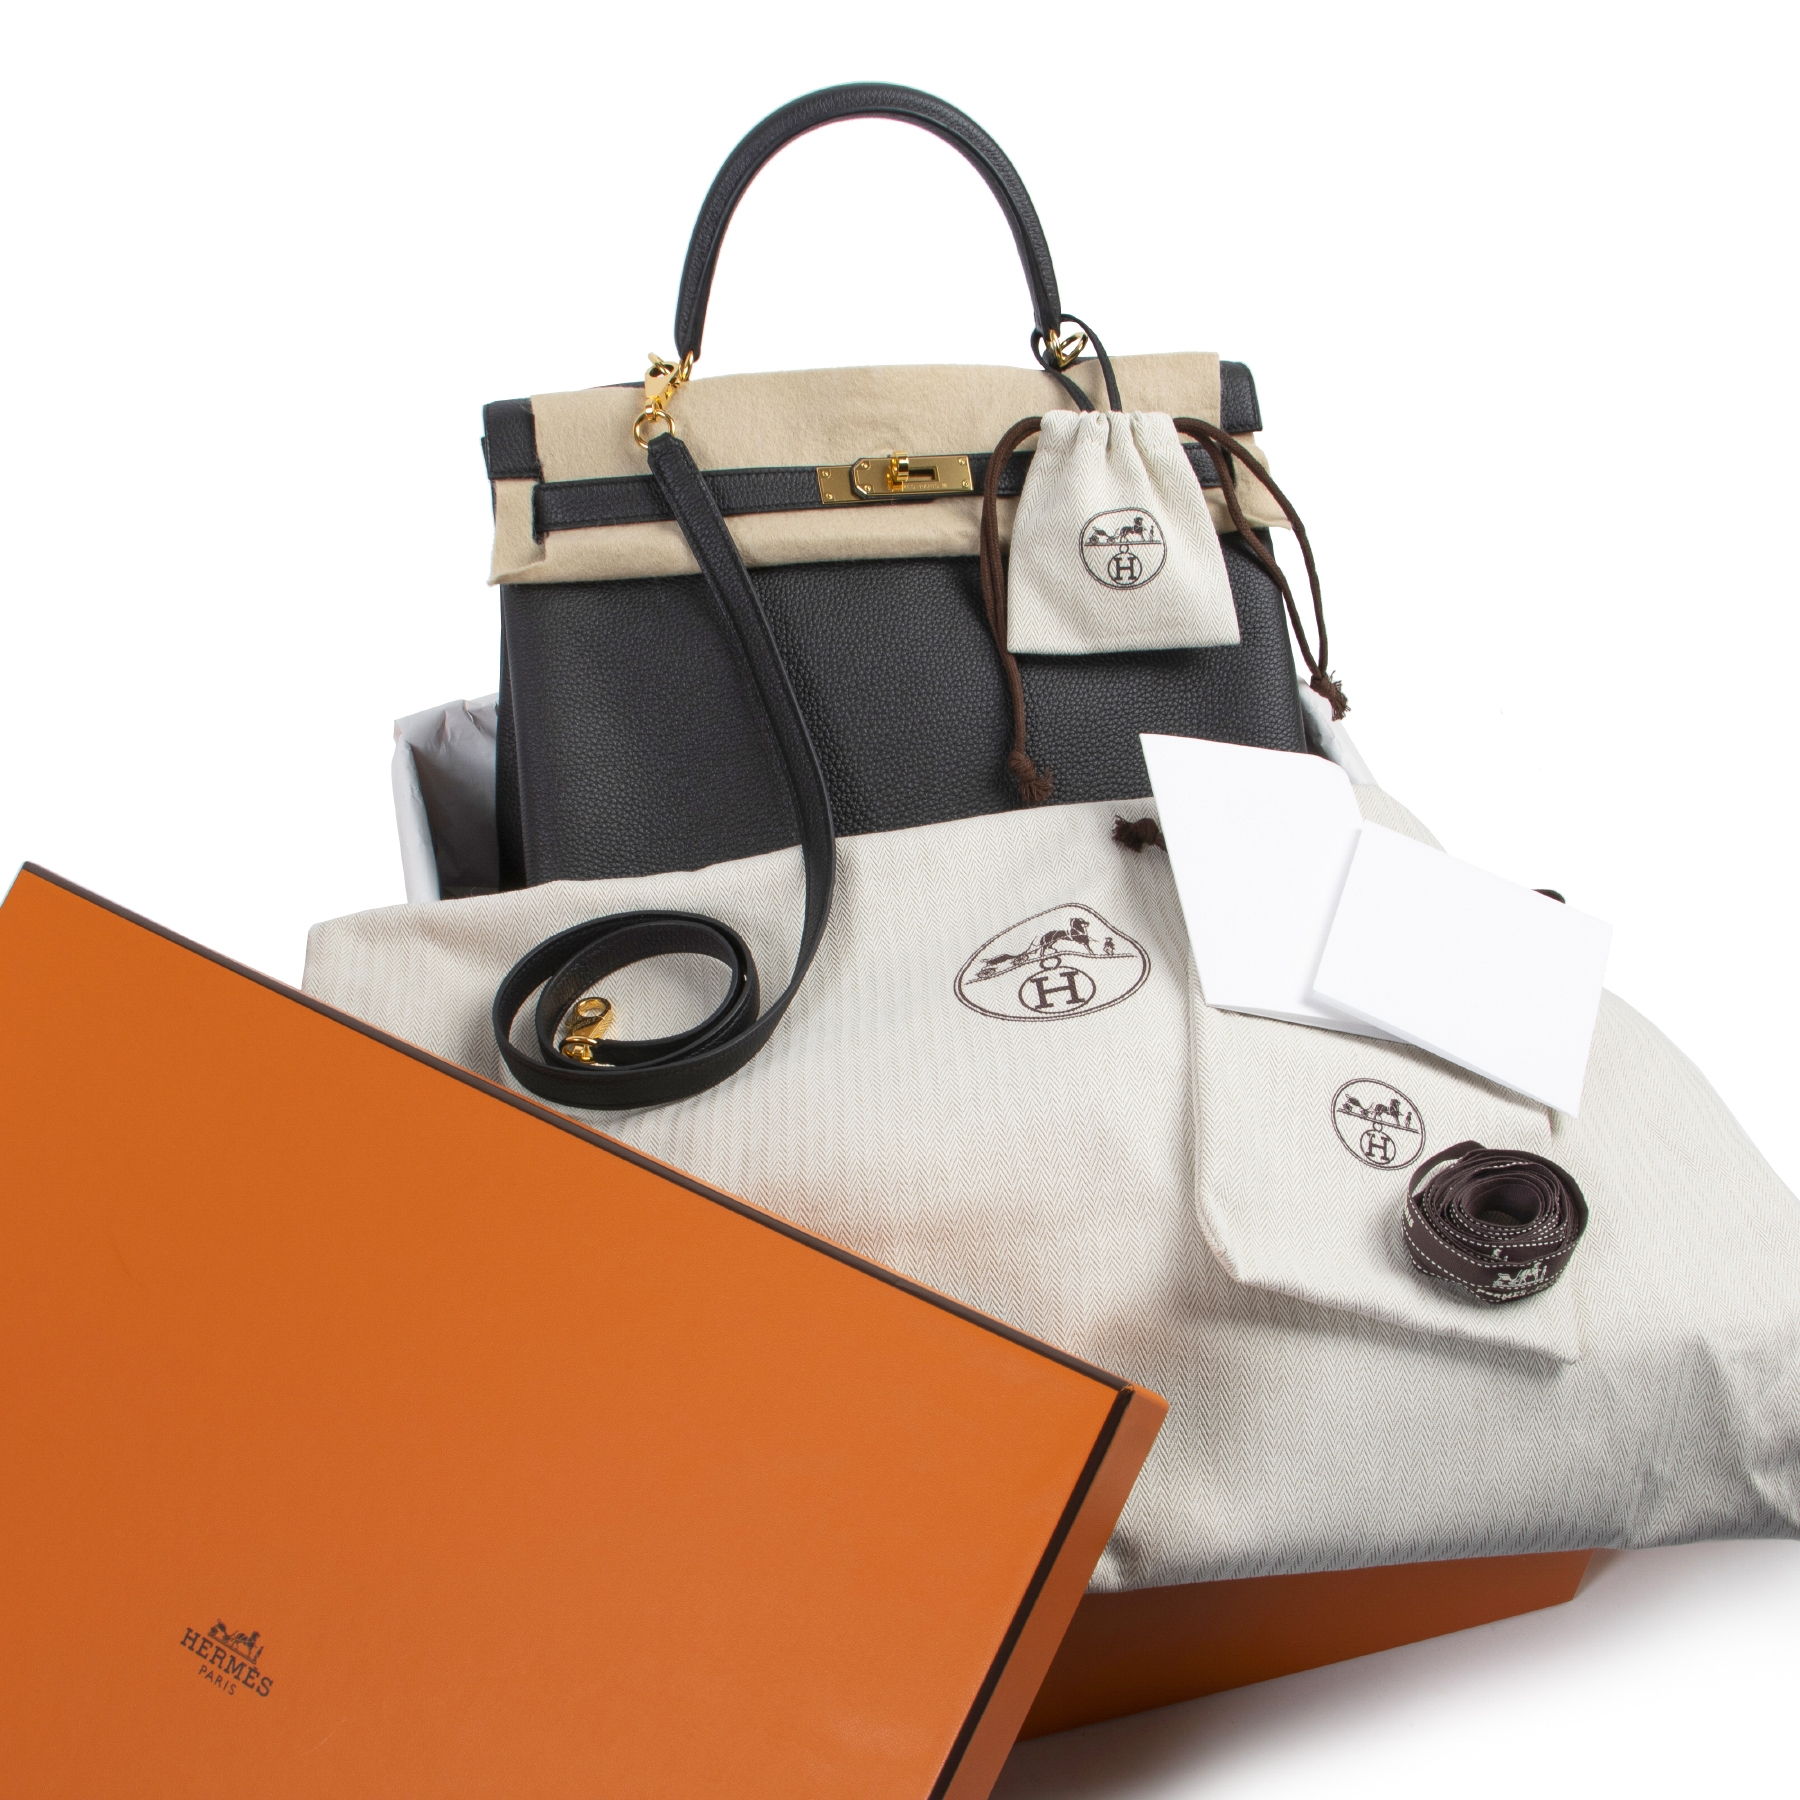 Buy and sell your designer bags online at Labellov secondhand luxury in Antwerp